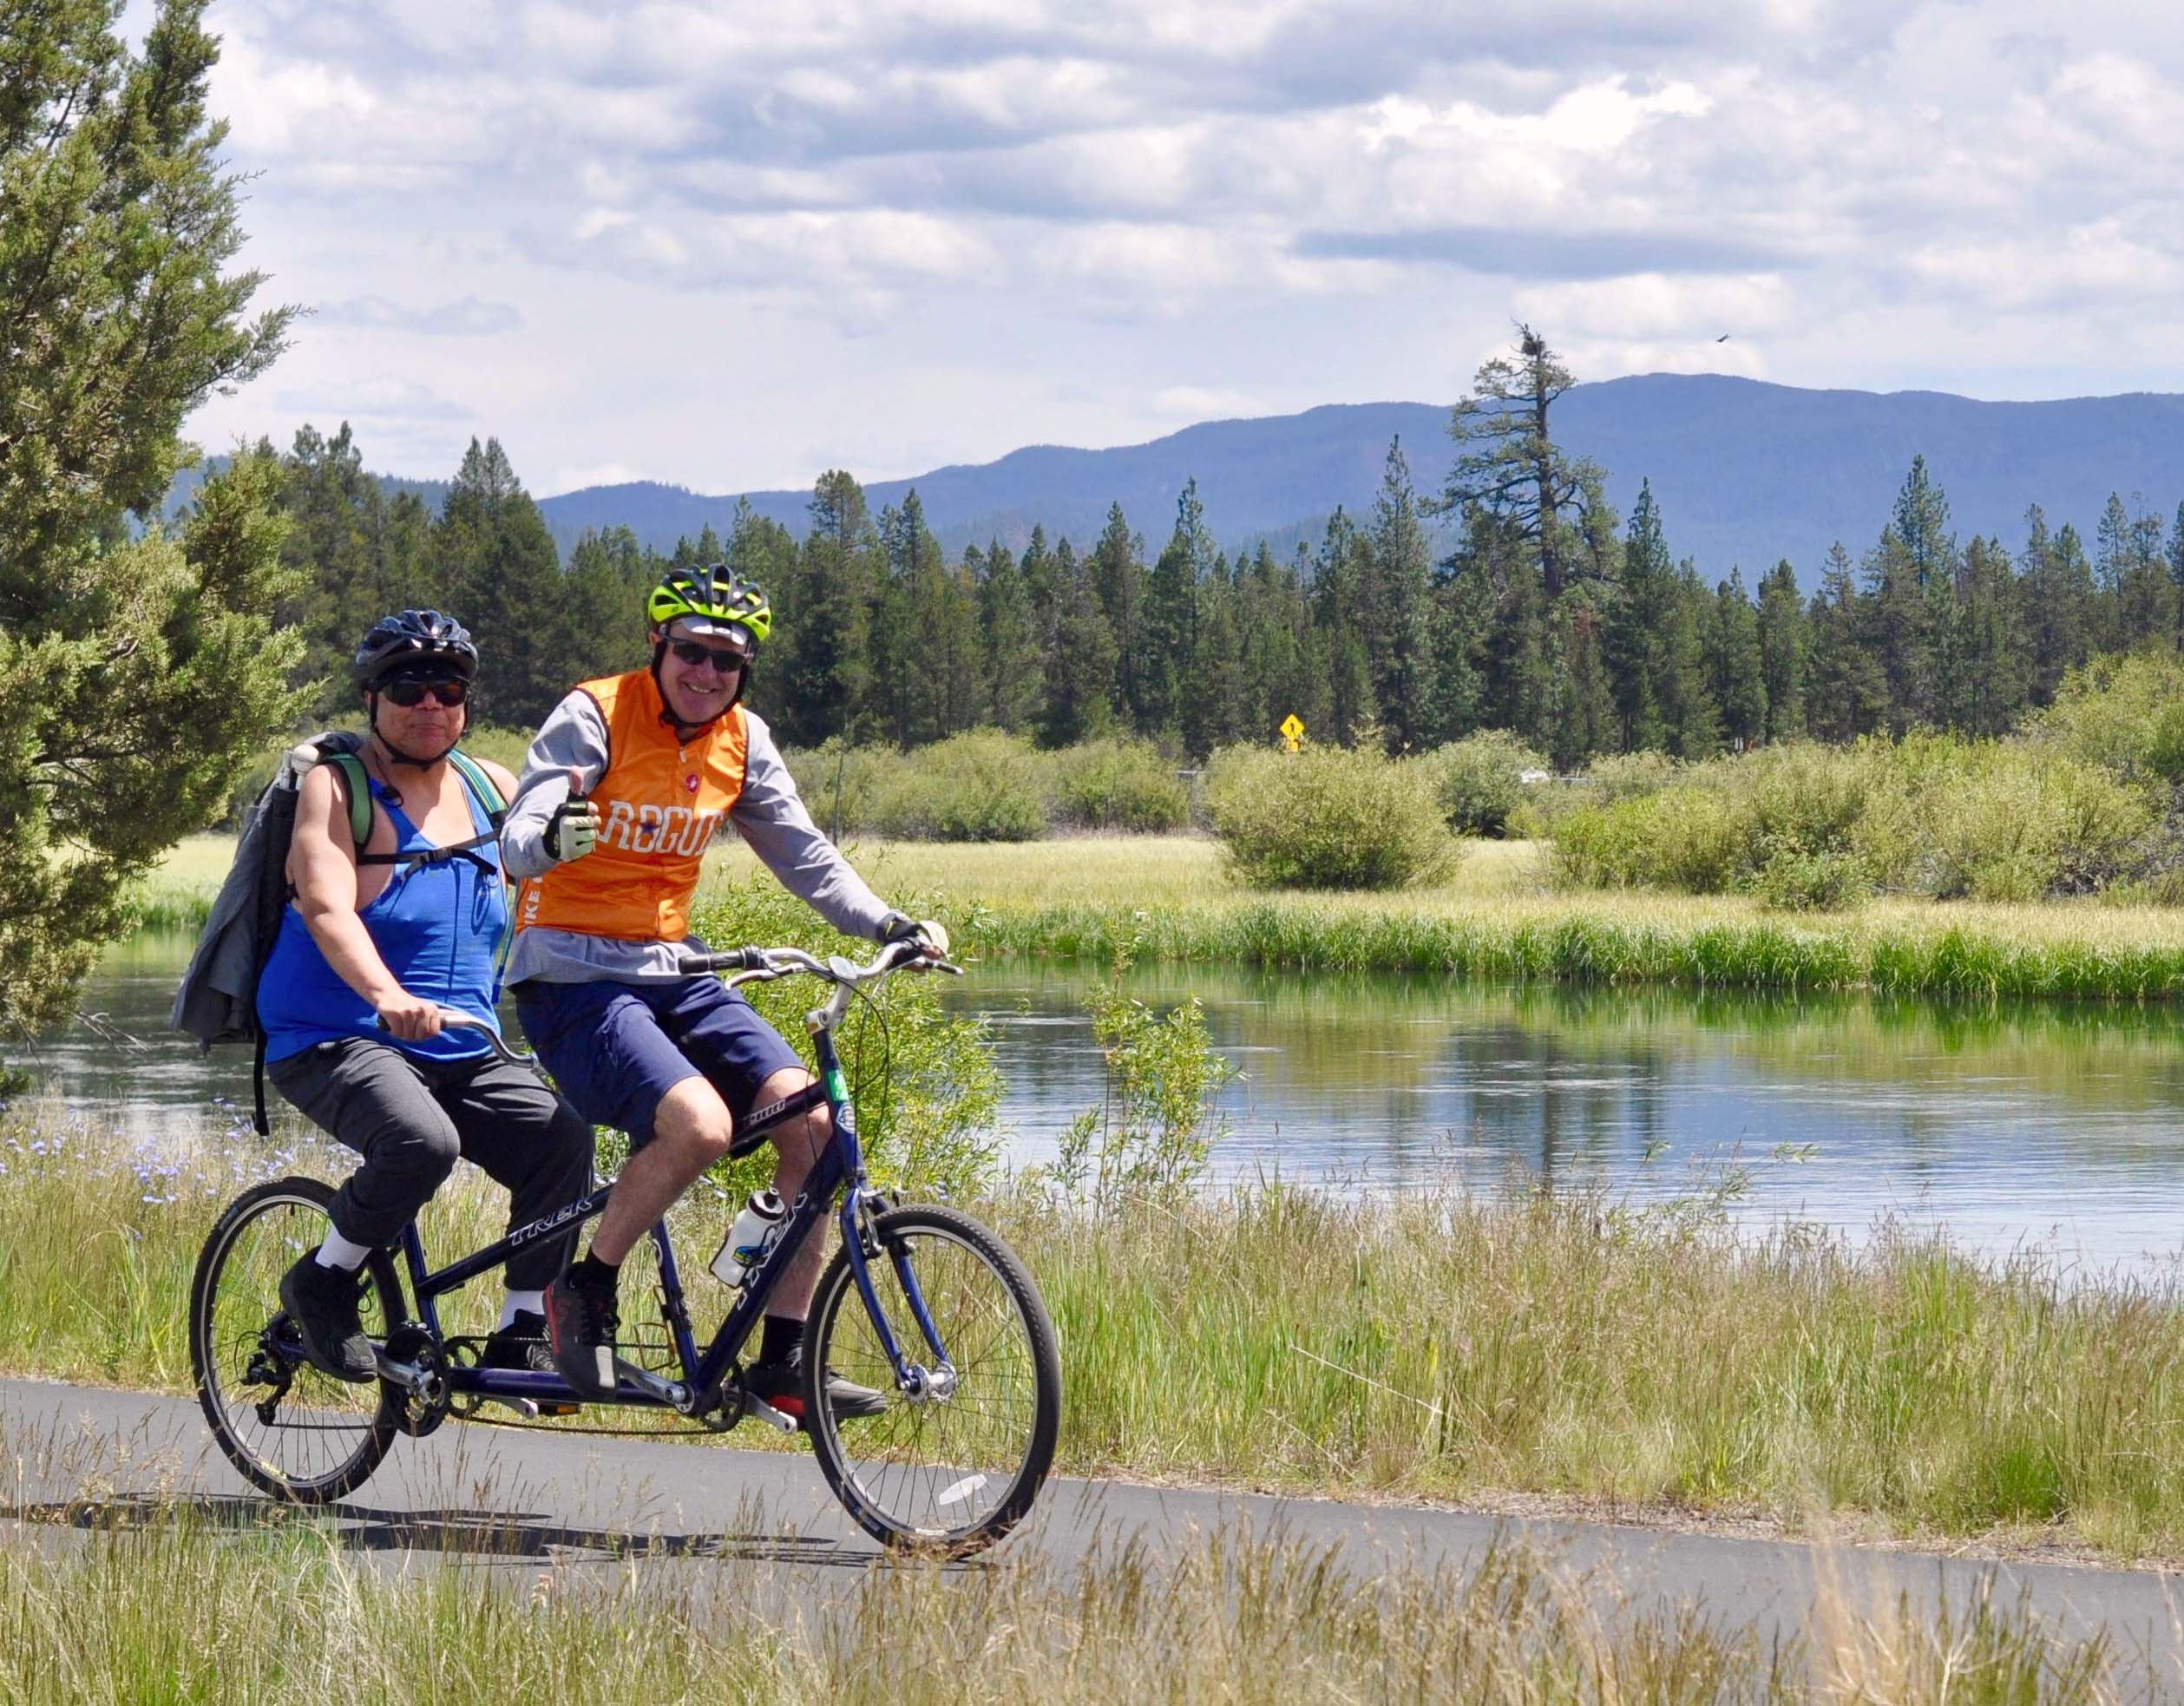 Volunteer and participant on tandem cycle